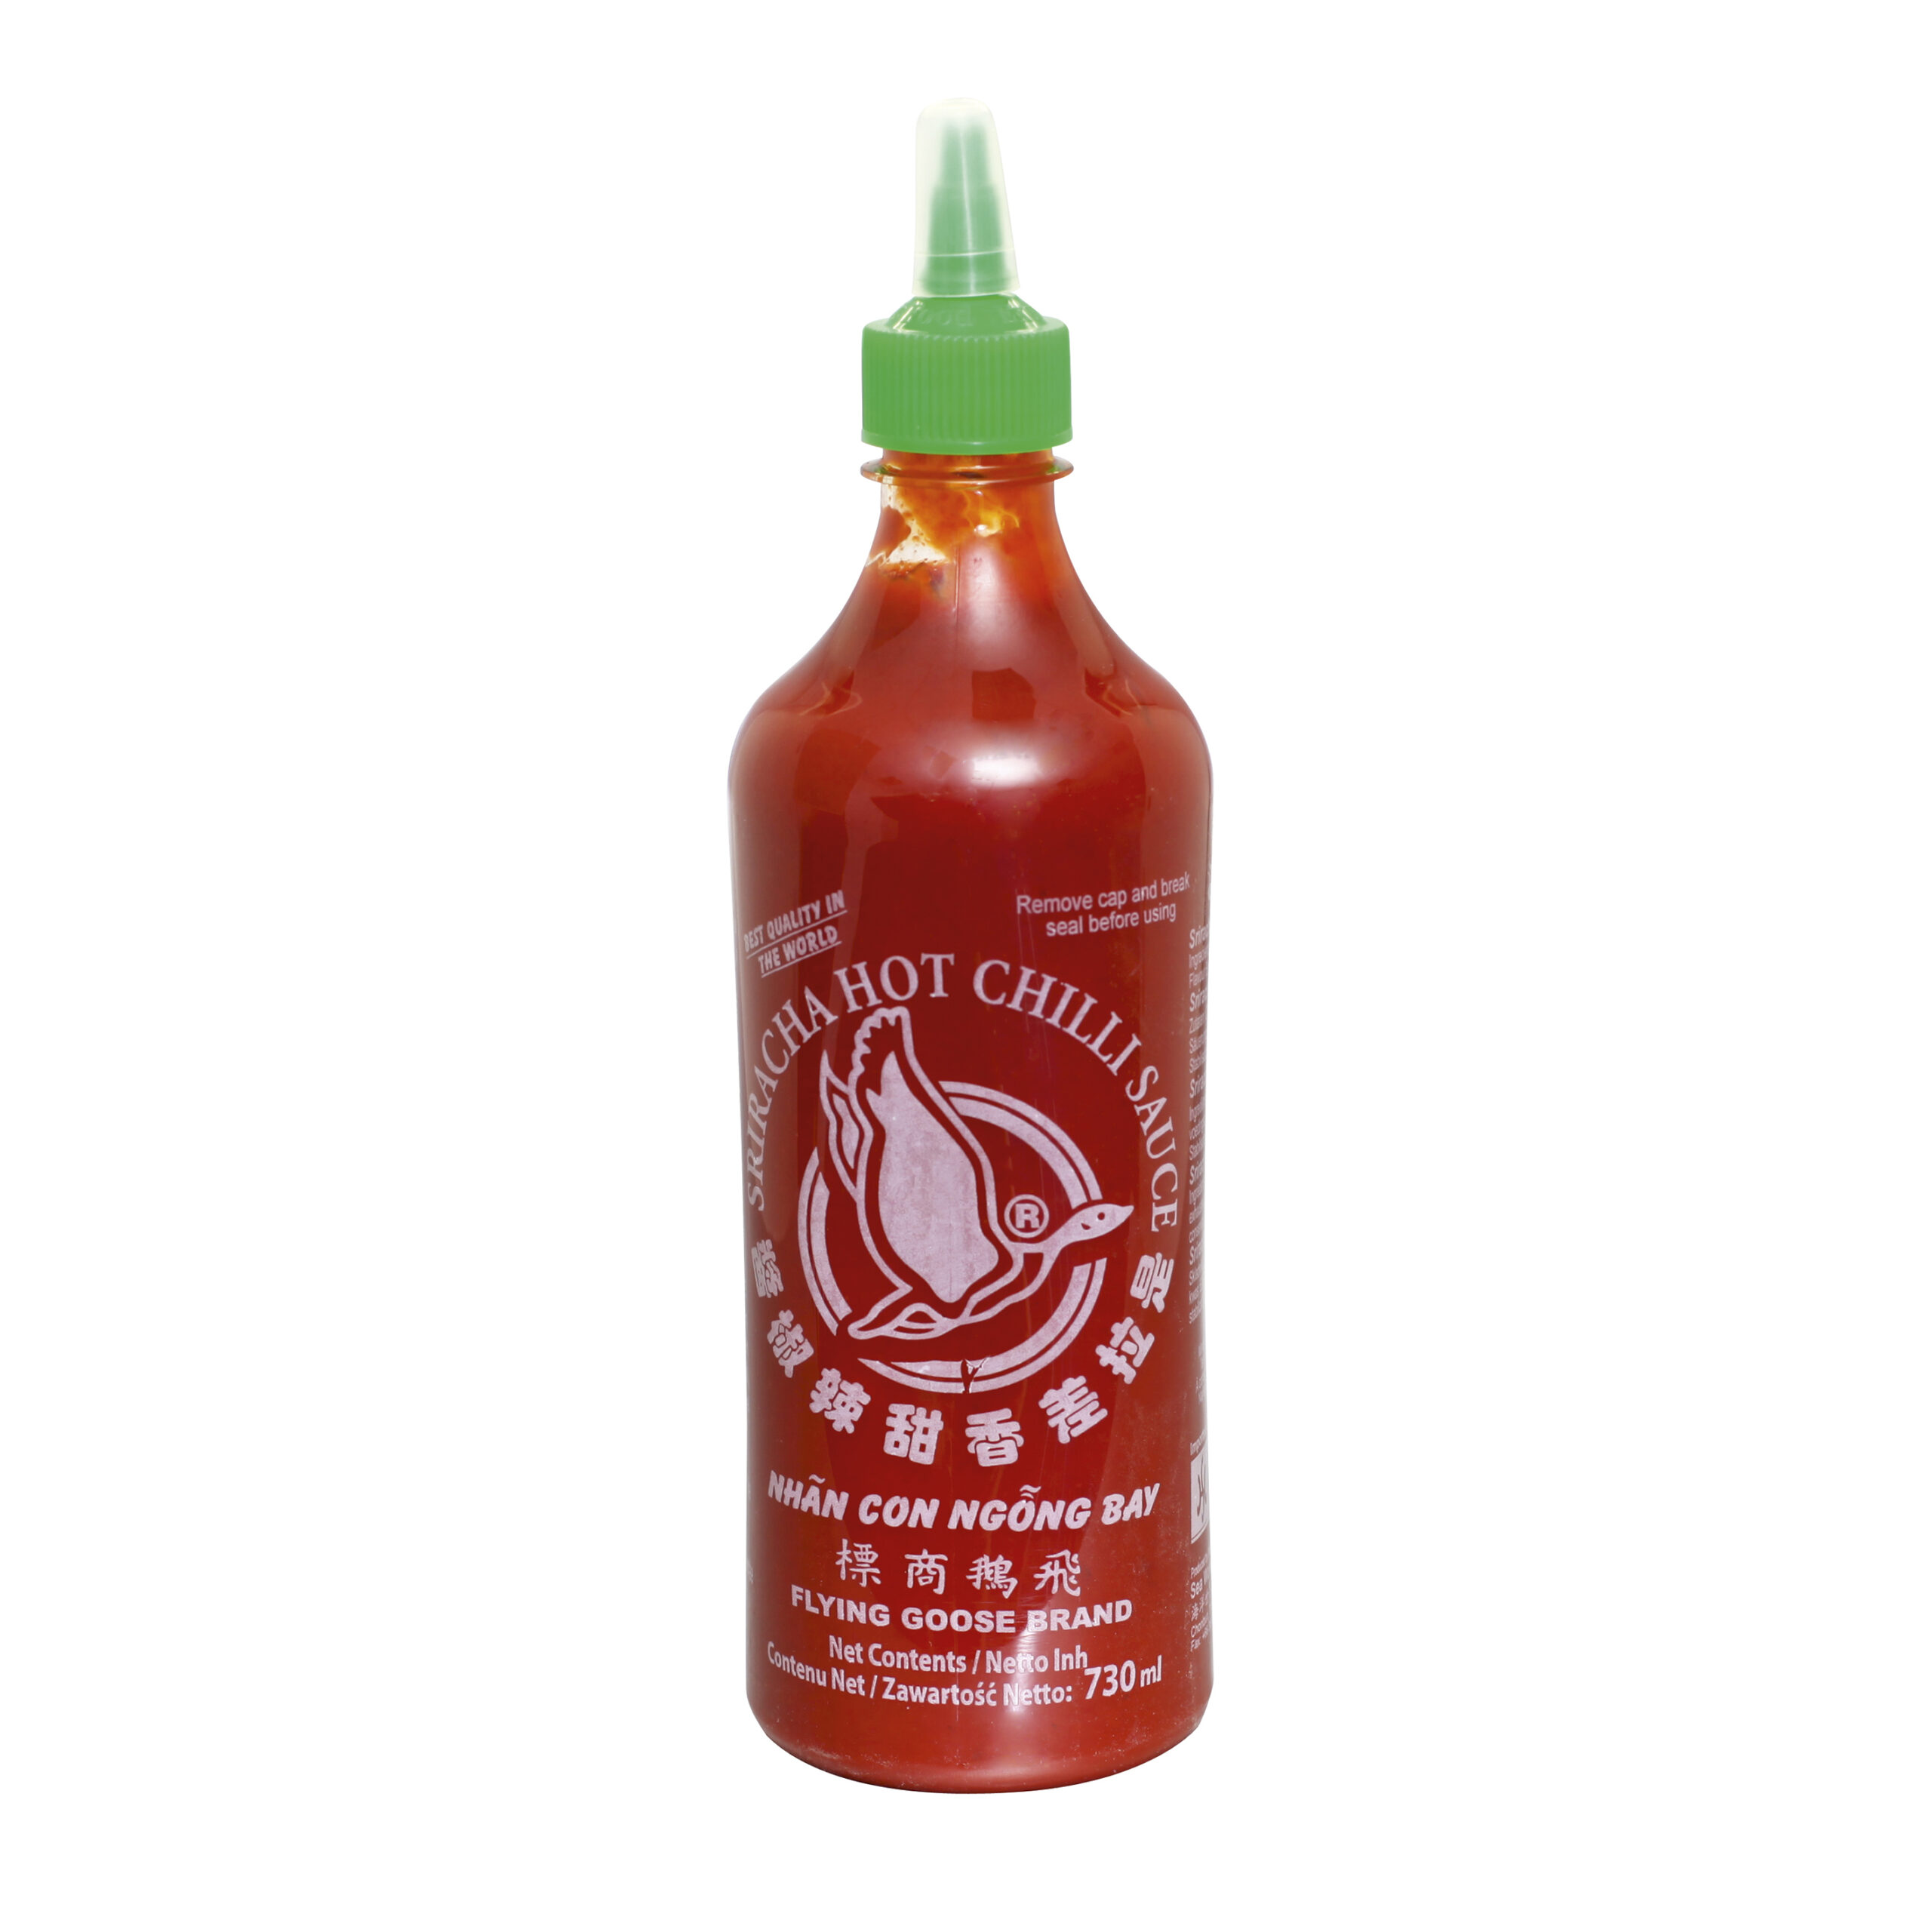 Flying Goose Sriracha Chili Sauce 750ml